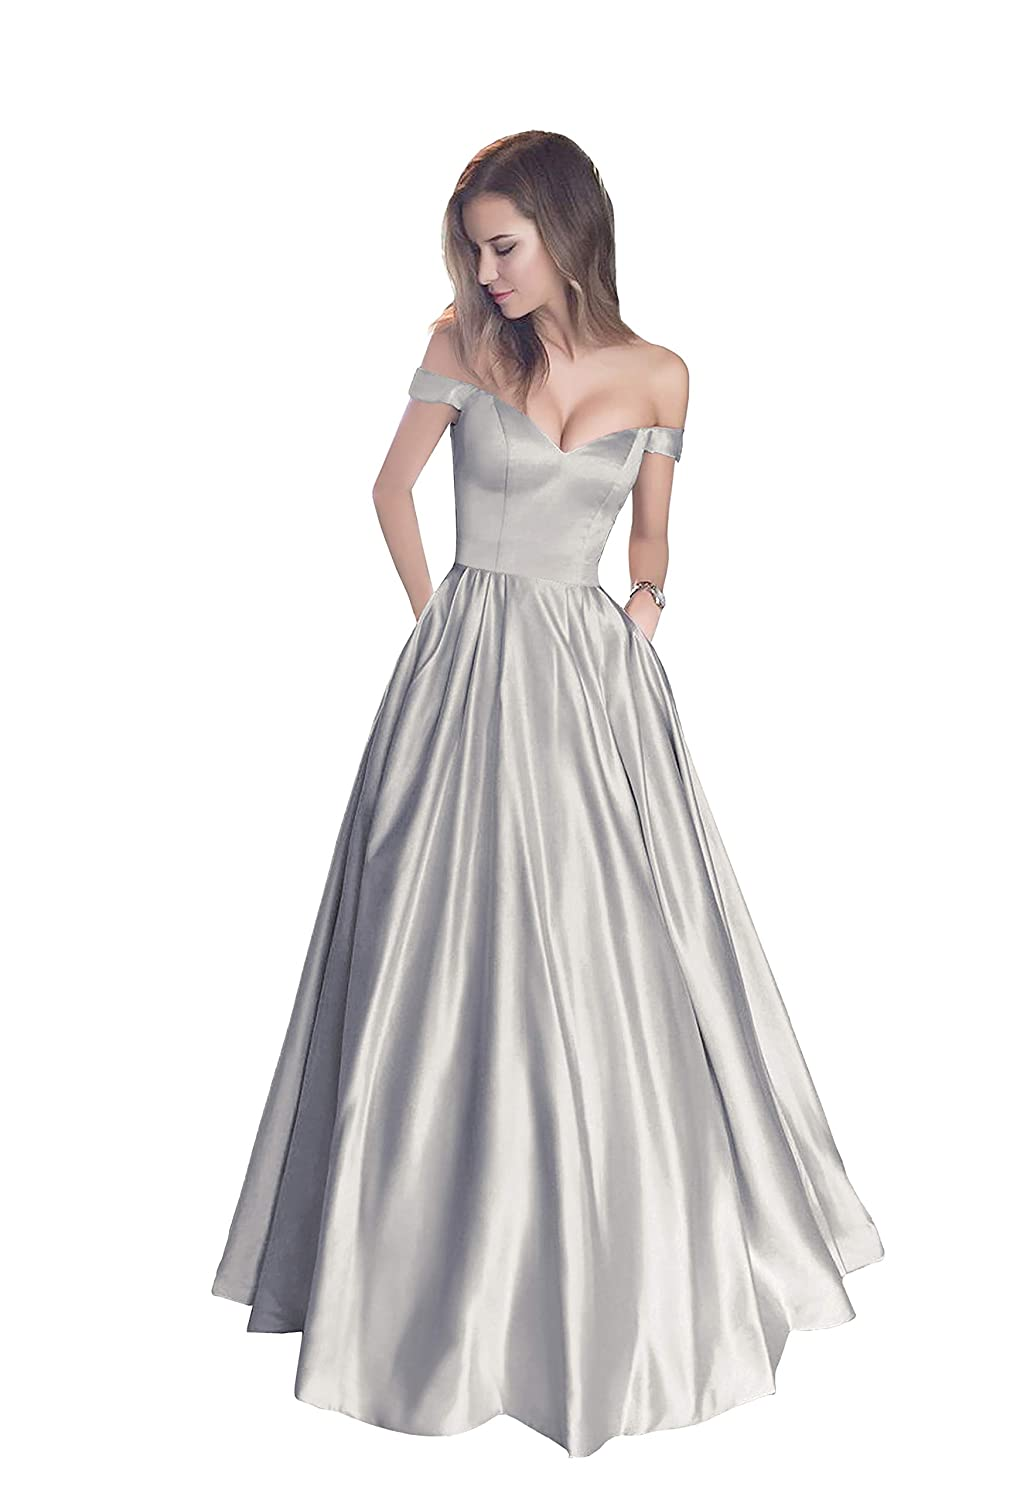 Harsuccting Off The Shoulder Beaded Satin Evening Prom Dress with Pocket